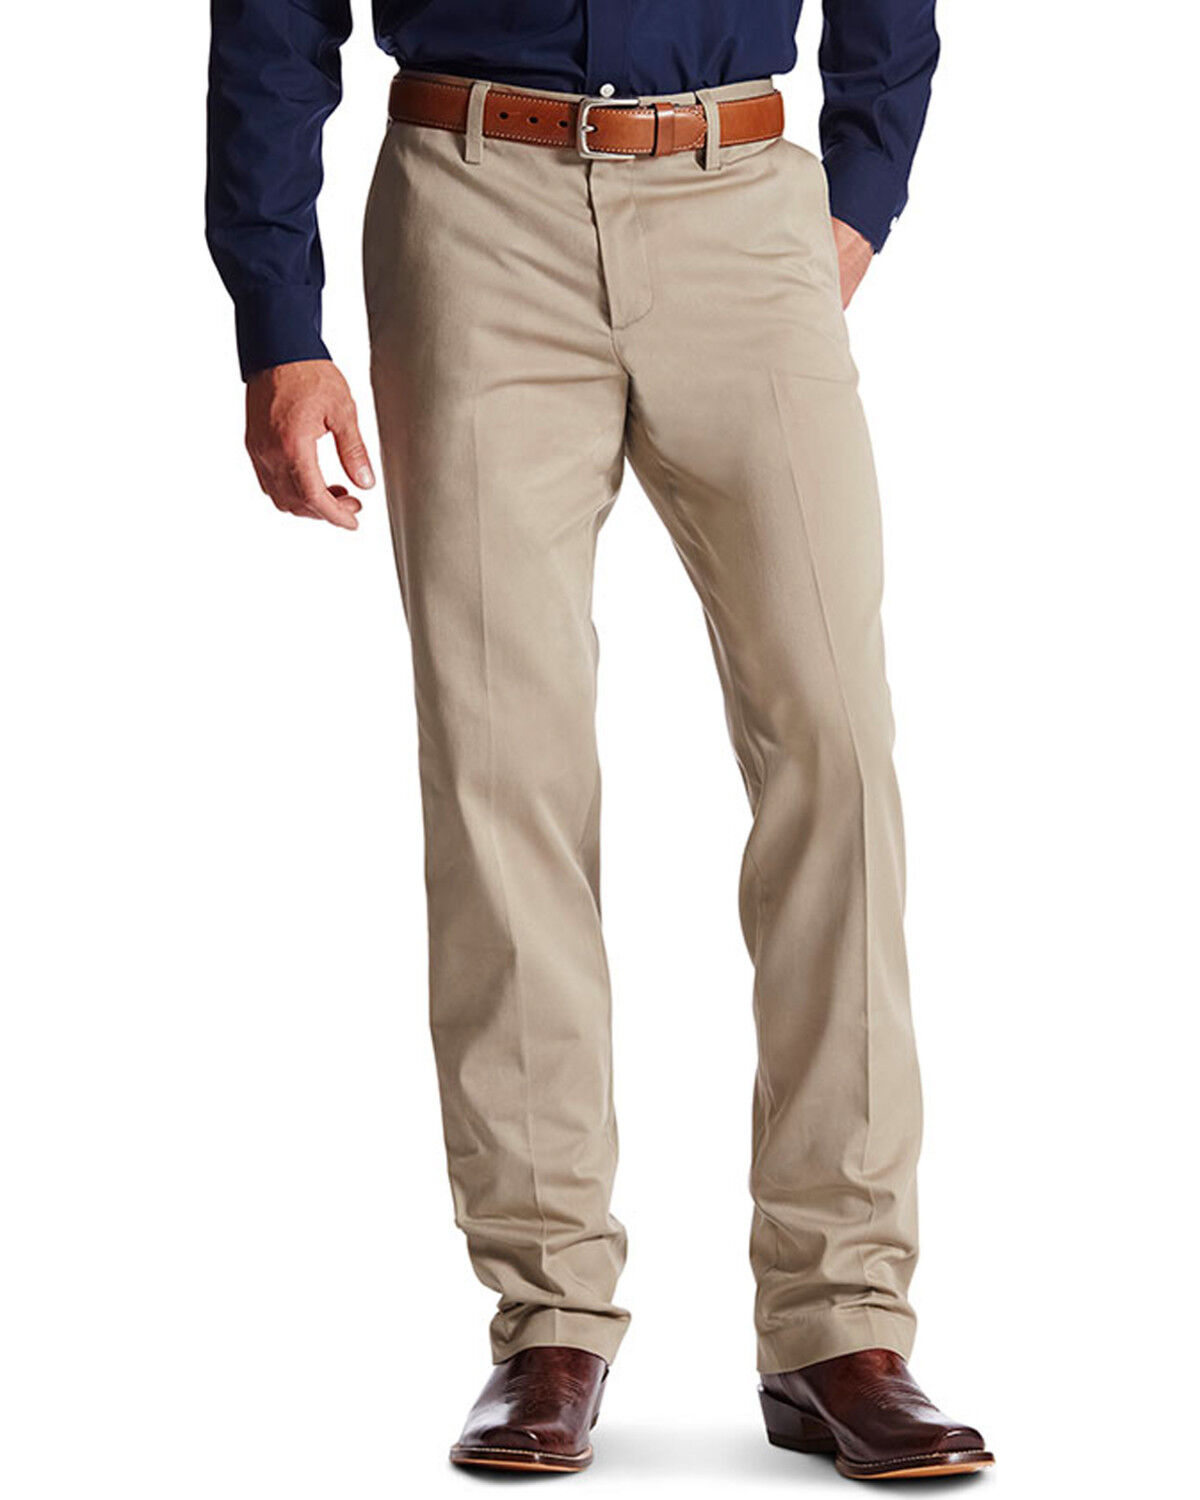 Relaxed bootcut khakis